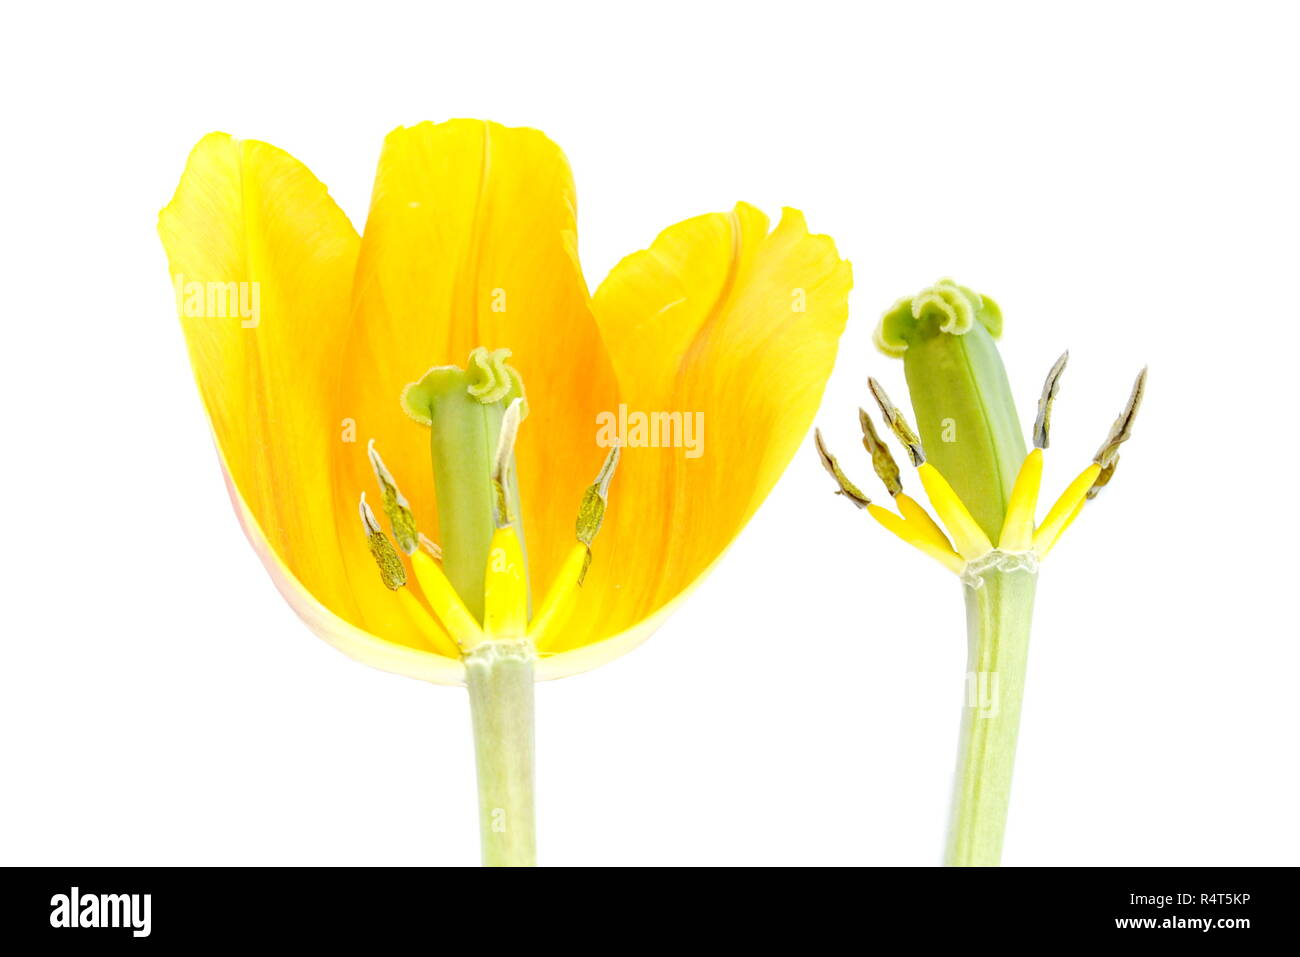 The reproductive parts of a tulip flower on white background Stock Photo